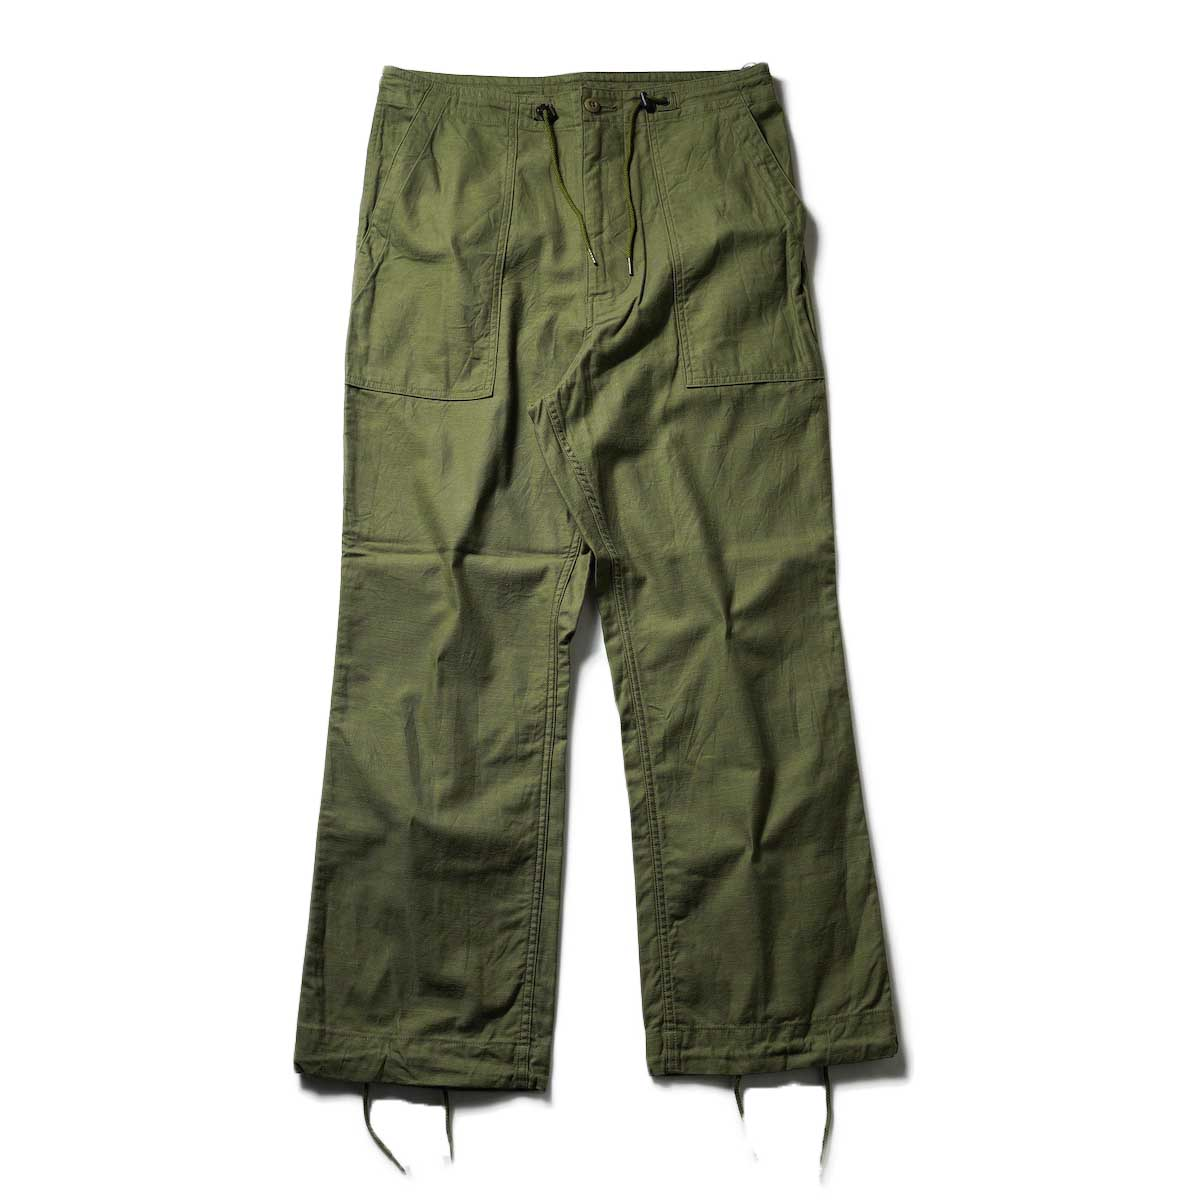 Needles / STRING FATIGUE PANT - BACK SATEEN (Olive)正面